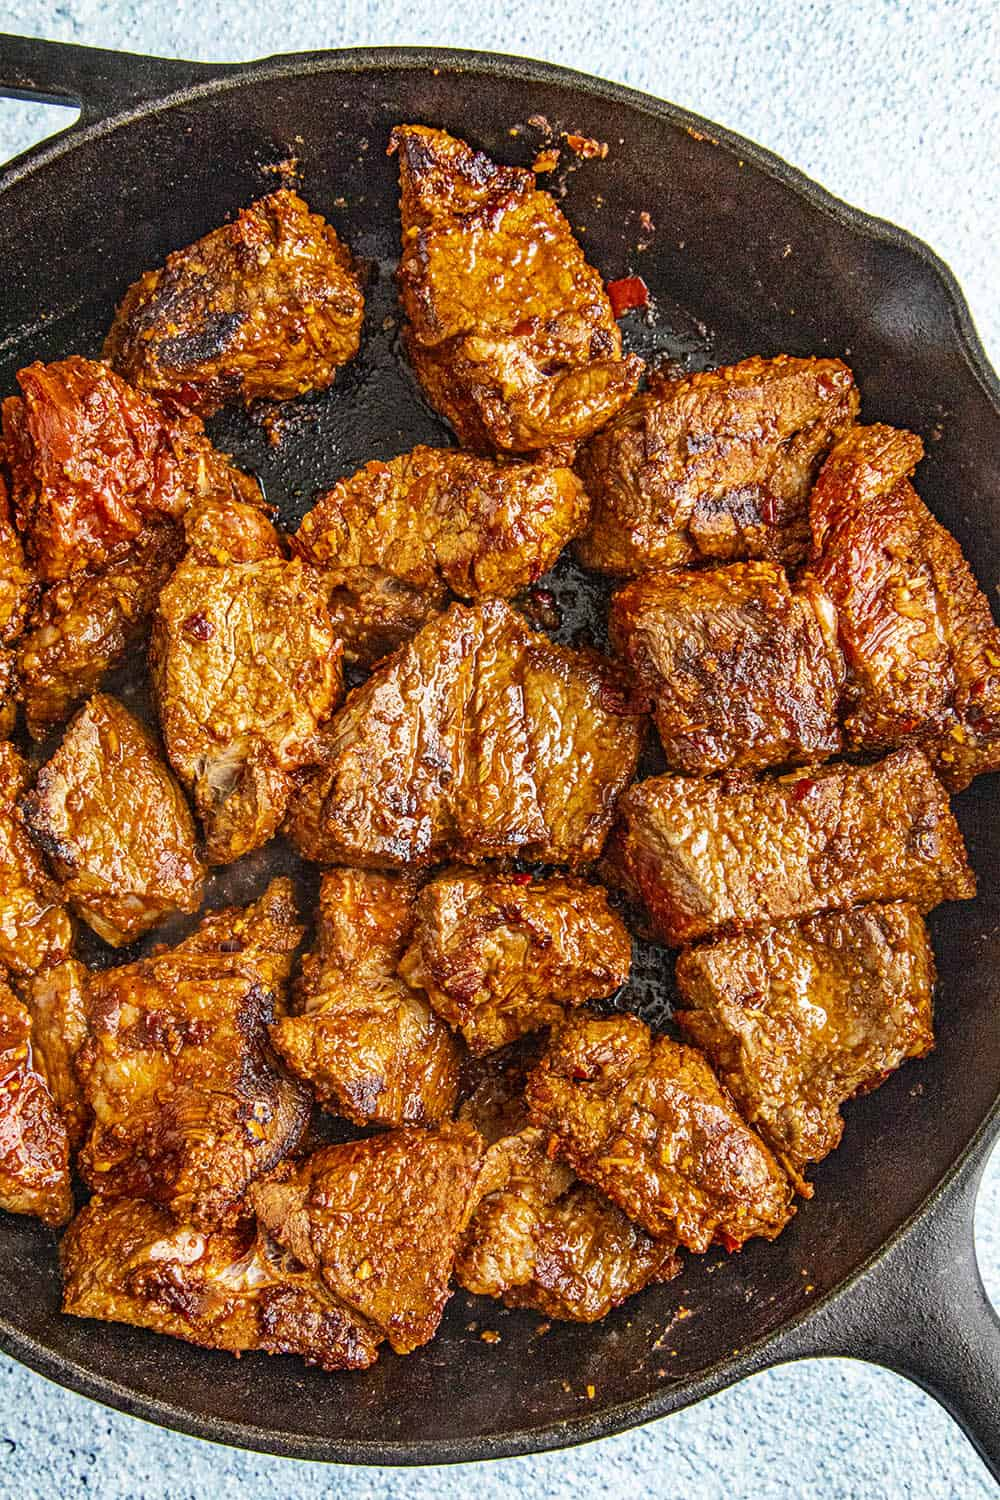 Chunks of seasoned meat seared in a cast iron pan